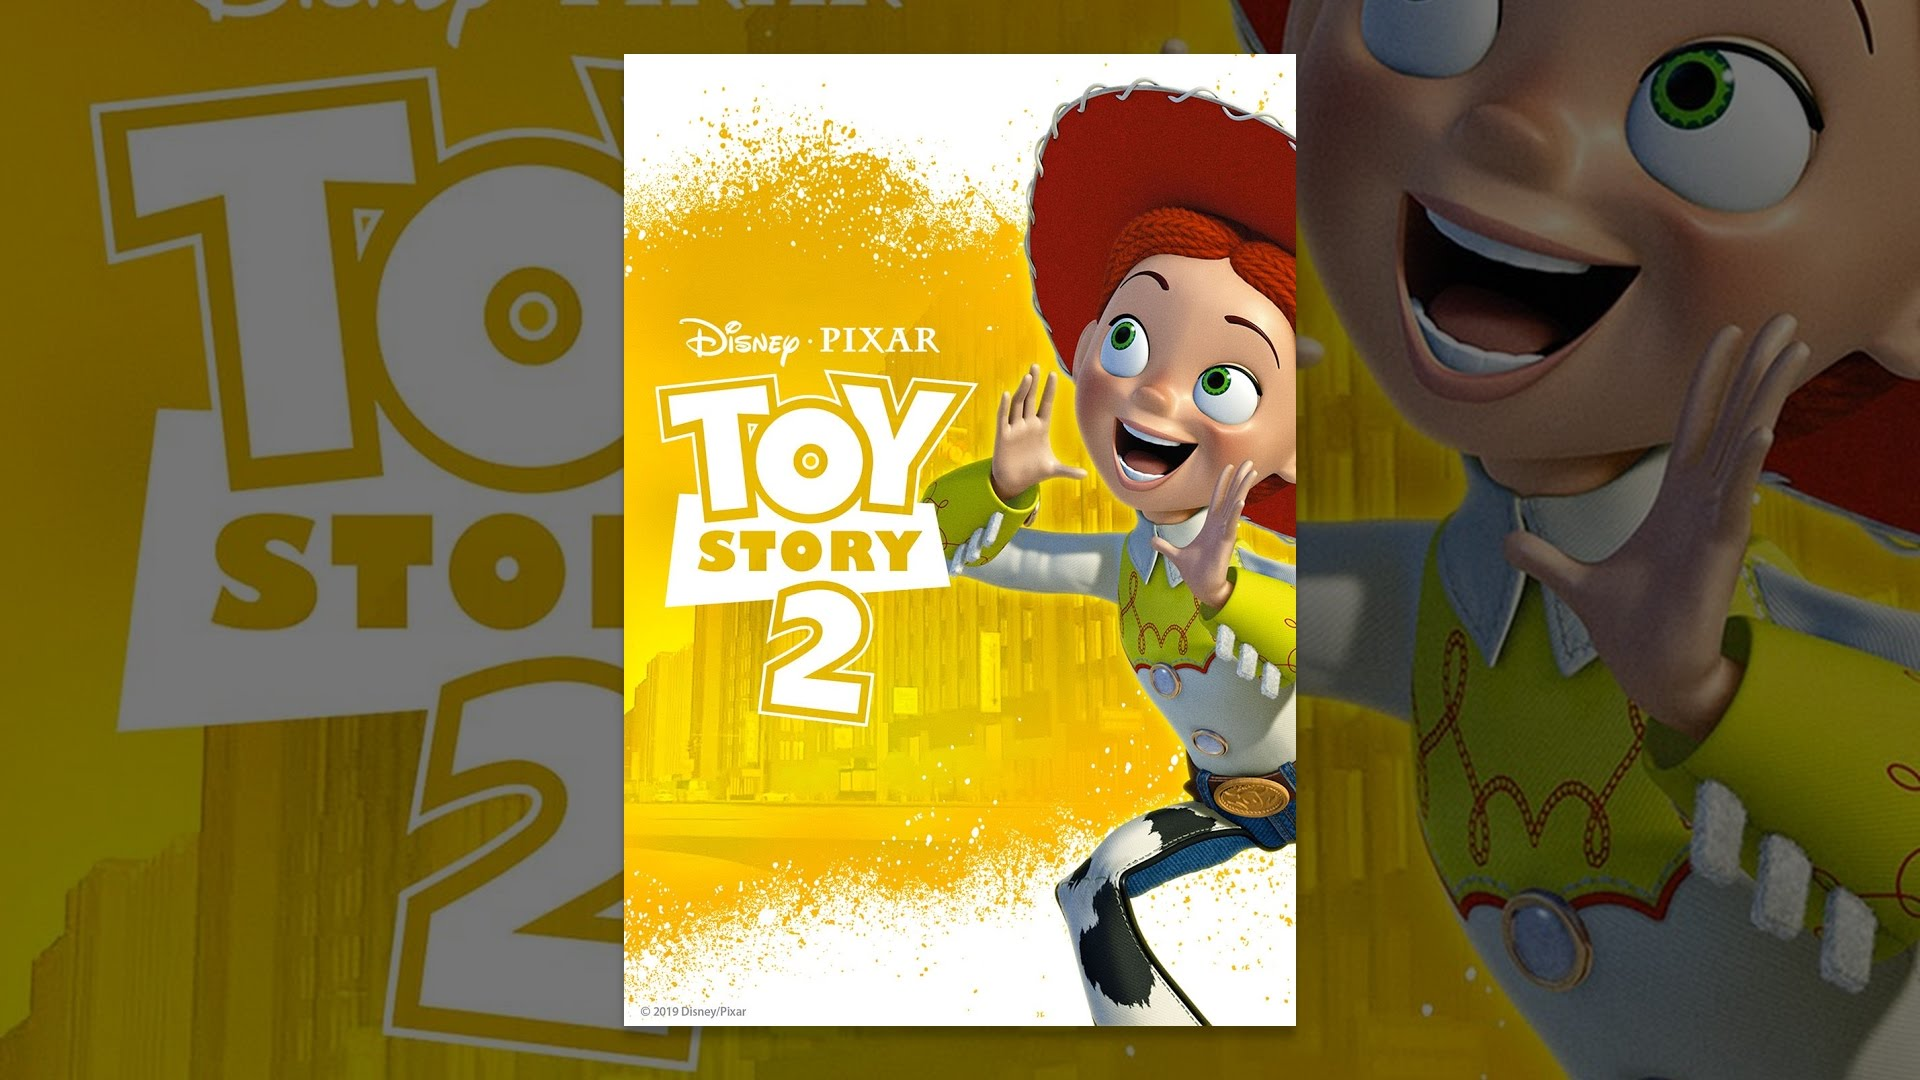 Toy Story 2 : Toy story